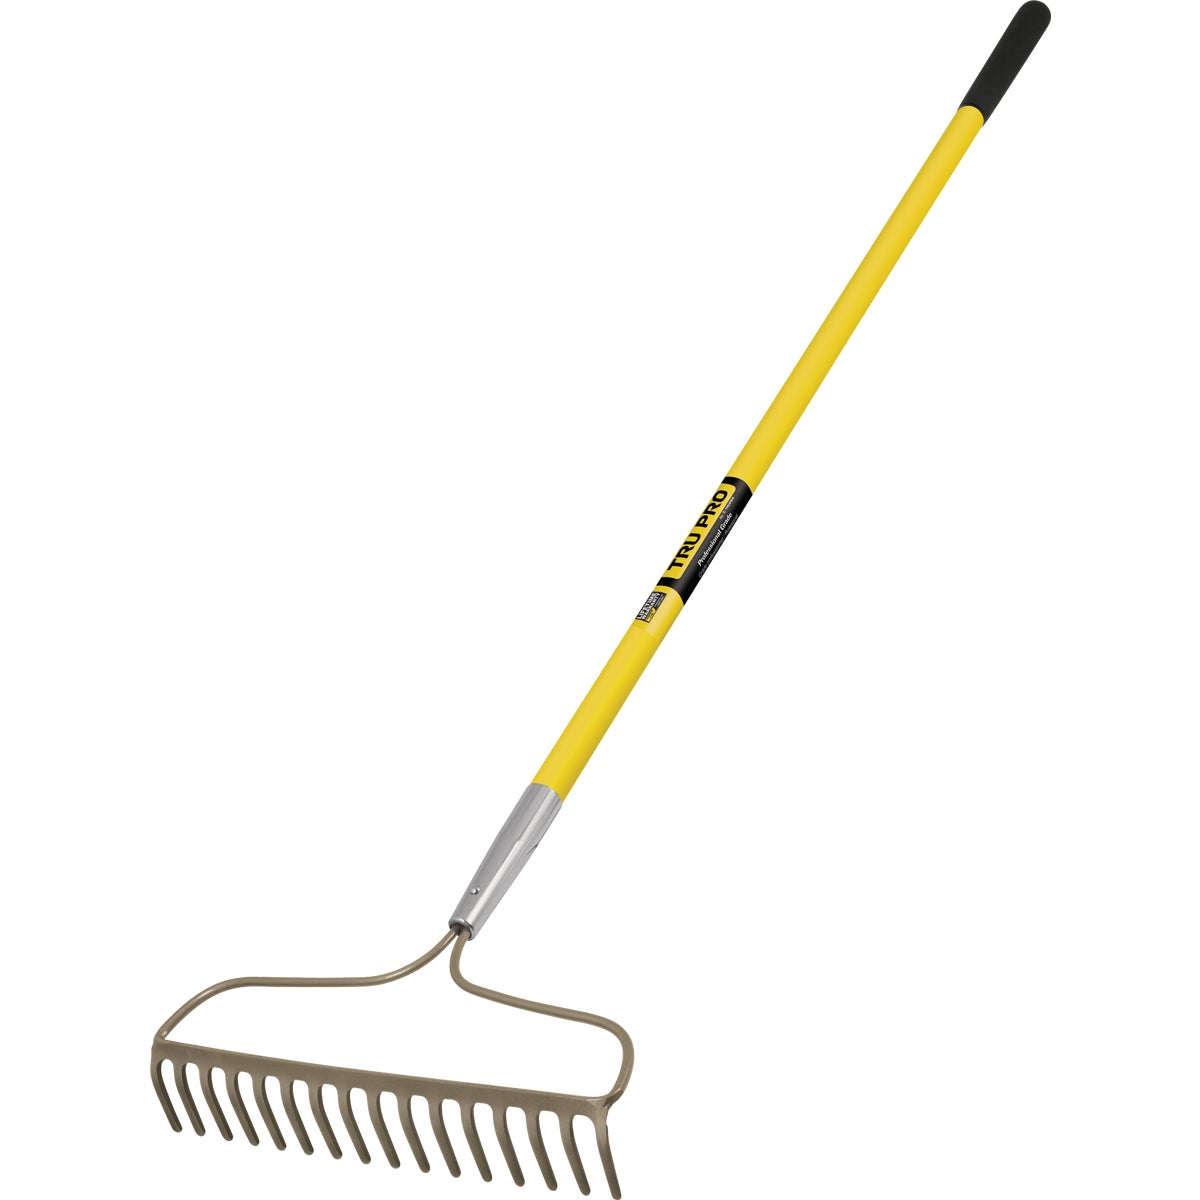 16 TINE FBGL BOW RAKE - 42366 by Seymour Mfg Co